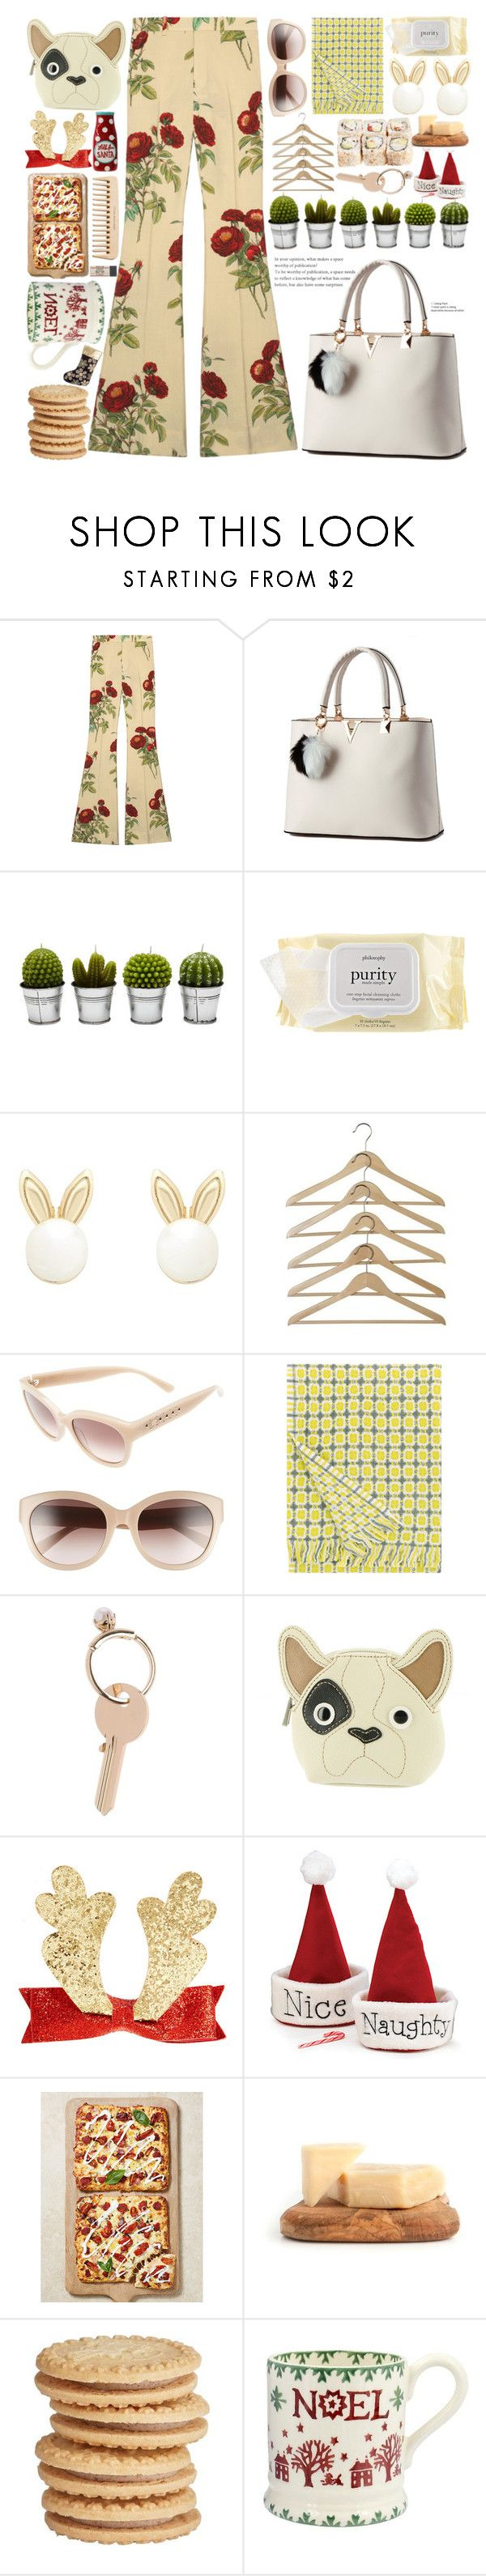 """""""light yellow"""" by nadiazaful ❤ liked on Polyvore featuring Gucci, Billabong, philosophy, Lipsy, MCM, Lapuan Kankurit, Maison Margiela, The Body Shop, Relic and A by Amara"""